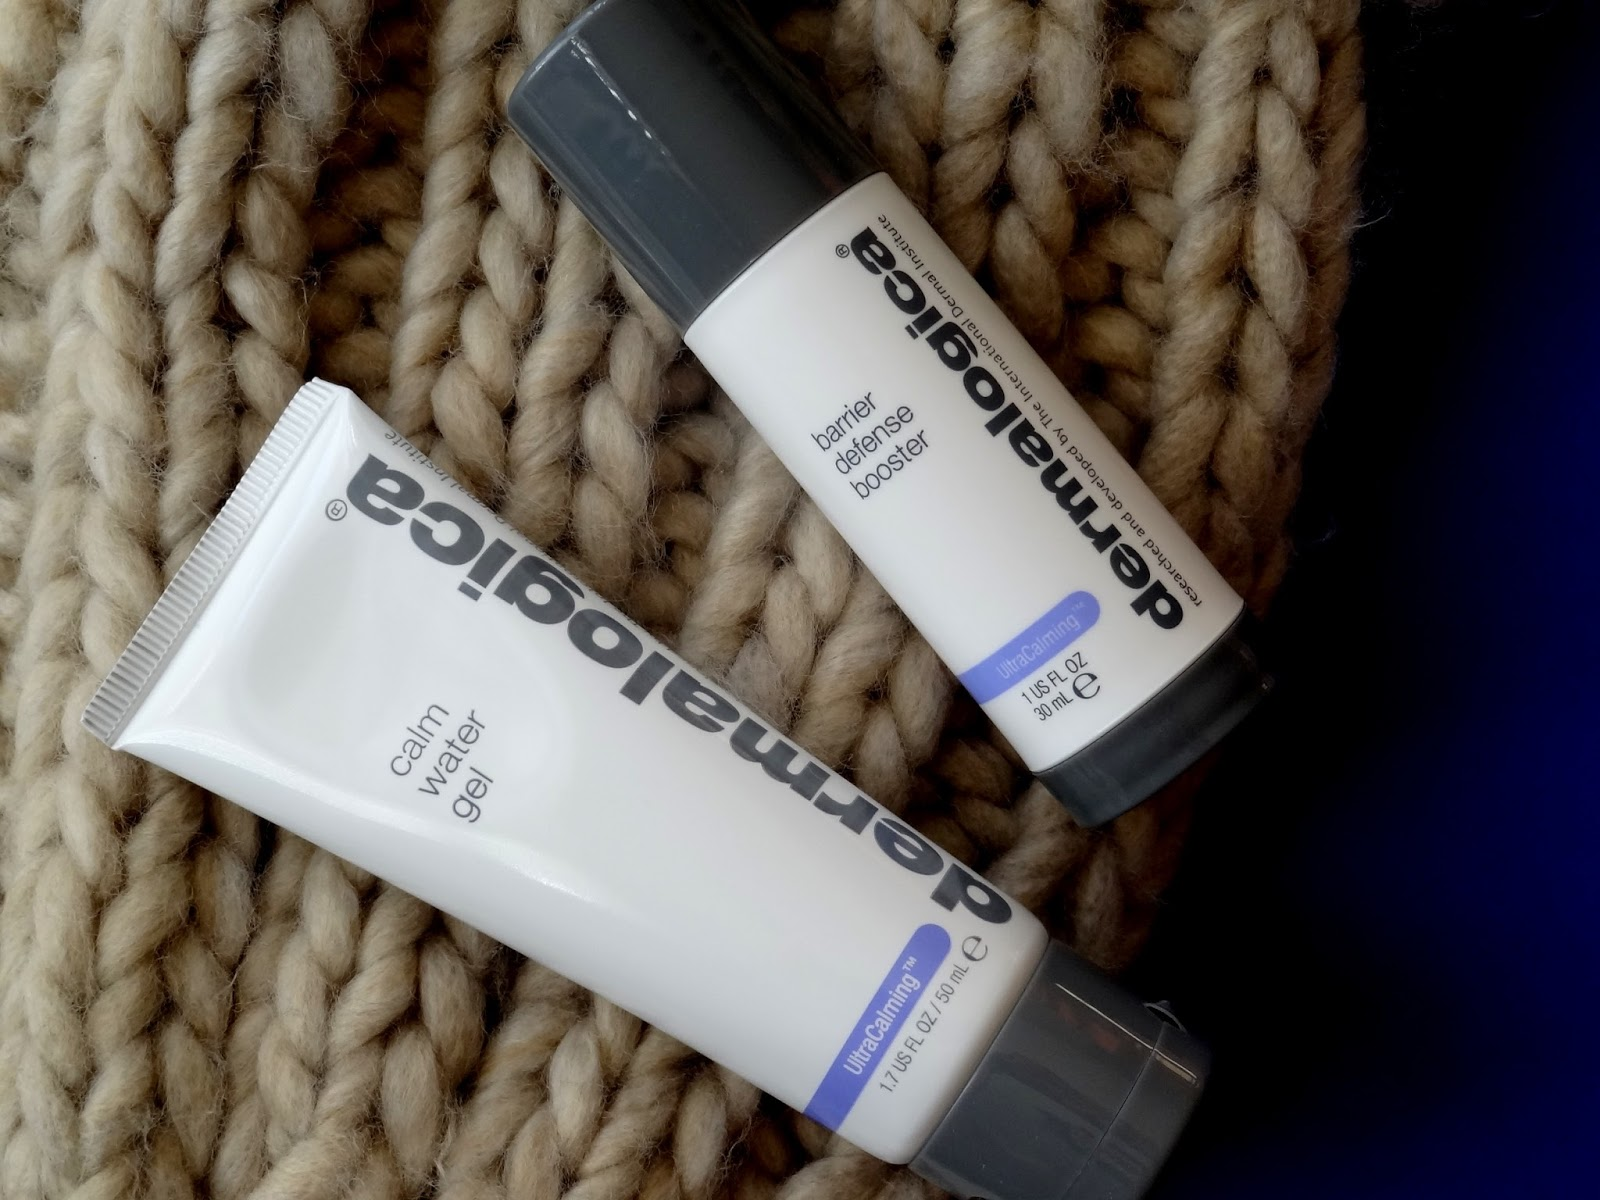 Makeup Beauty And More Dermalogica Calm Water Gel And